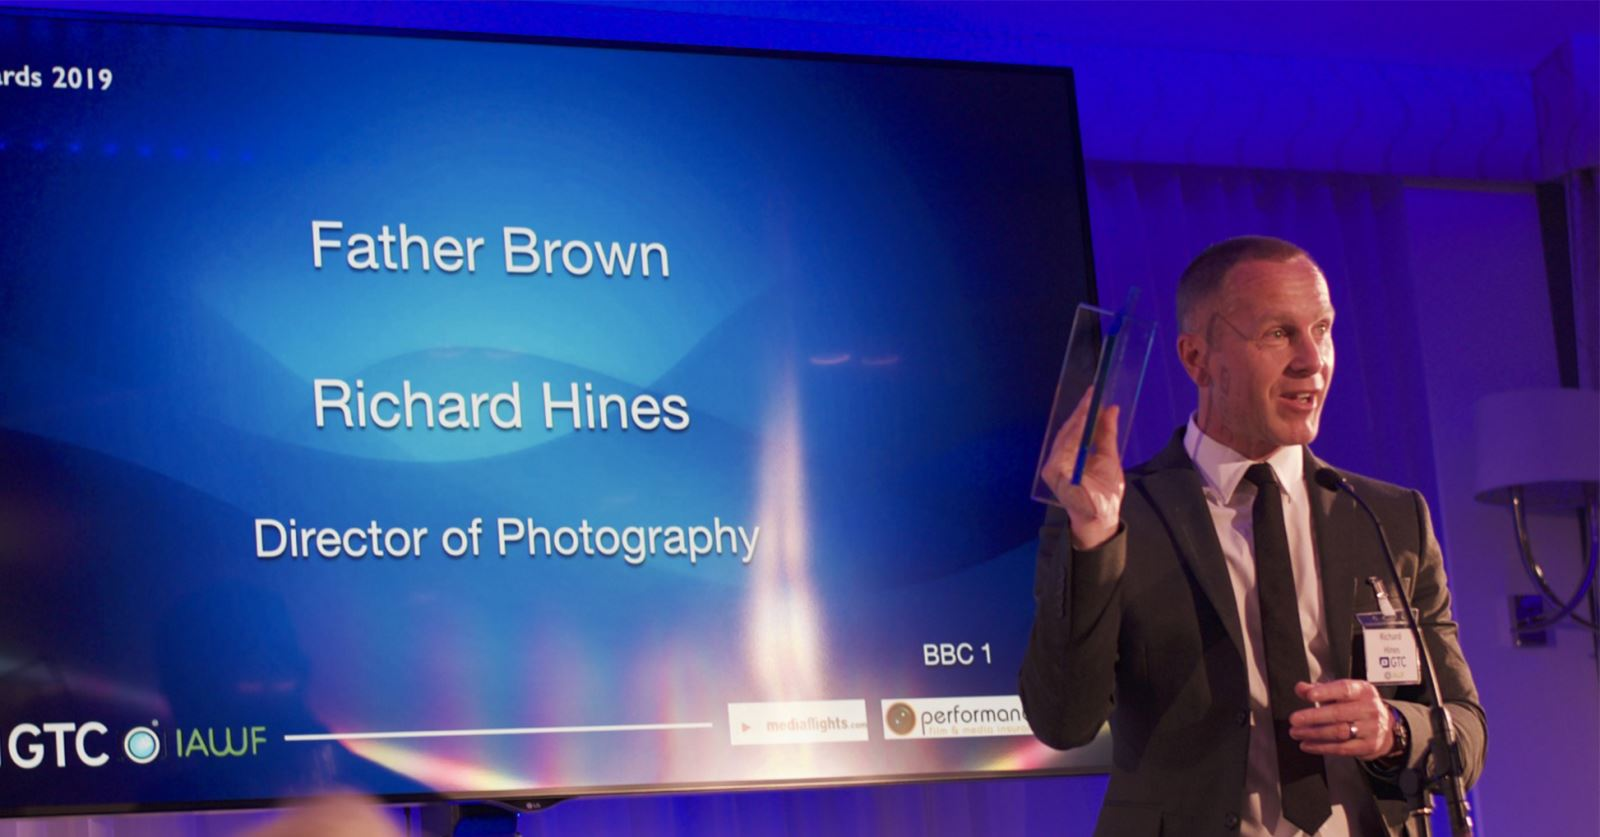 Richard Hines collects a GTC Award for his consistently excellent camera operation on the long-running 'Father Brown'